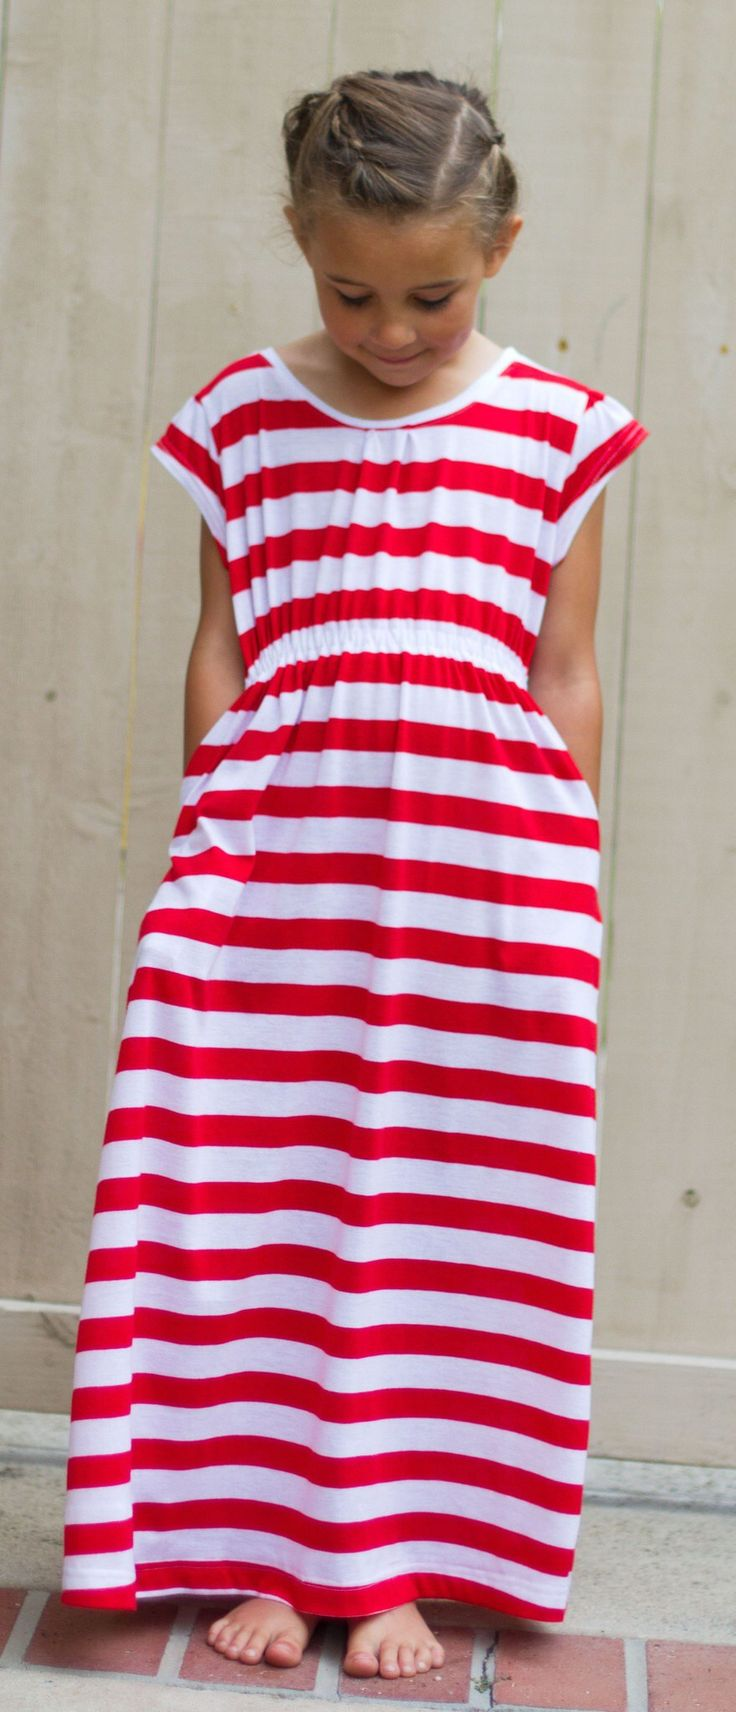 Go To Signature Dress from Go To Patterns | Tween PDF Dress Patterns